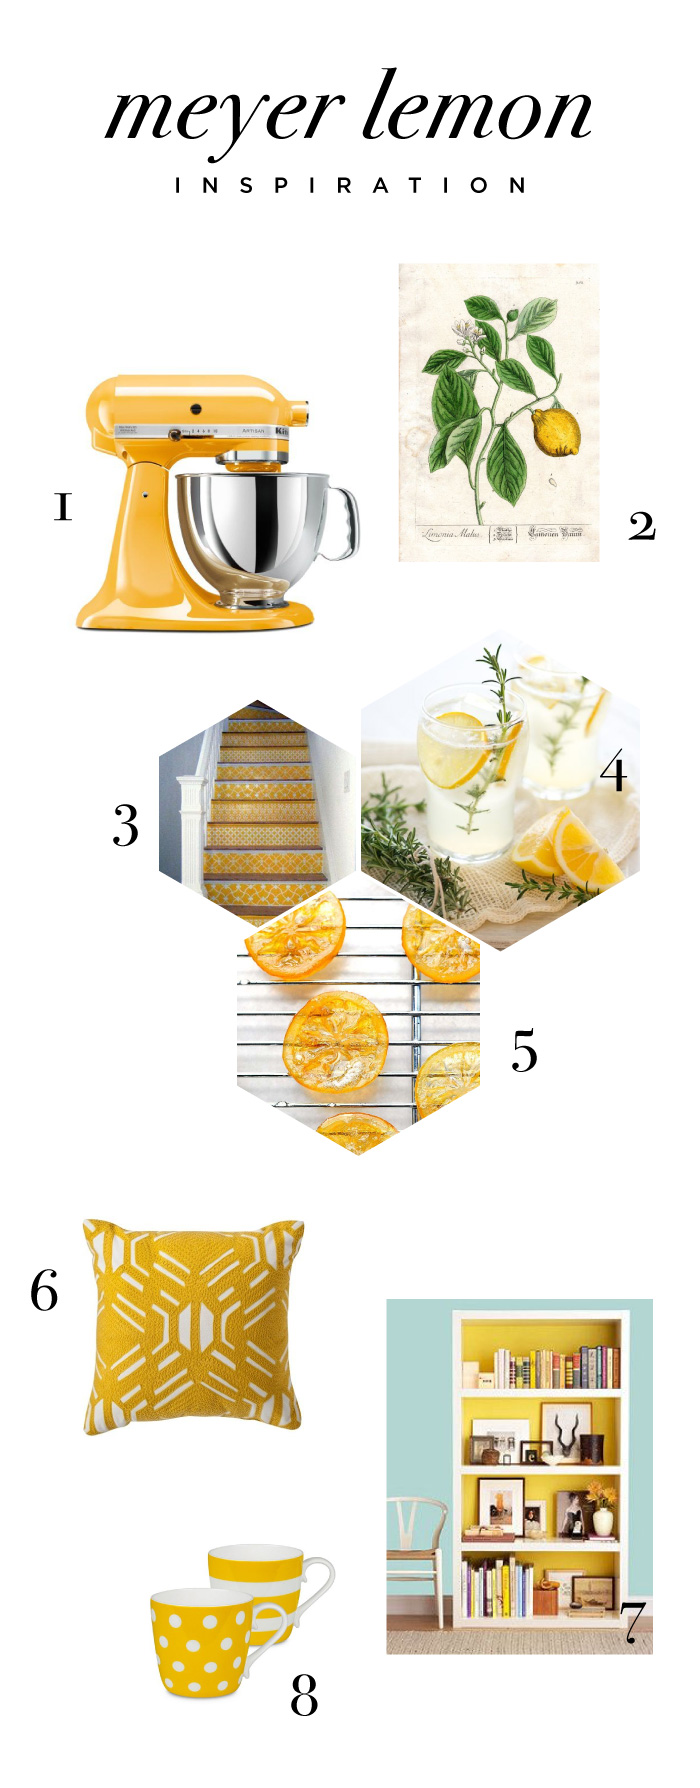 Meyer-Lemon-Inspiration